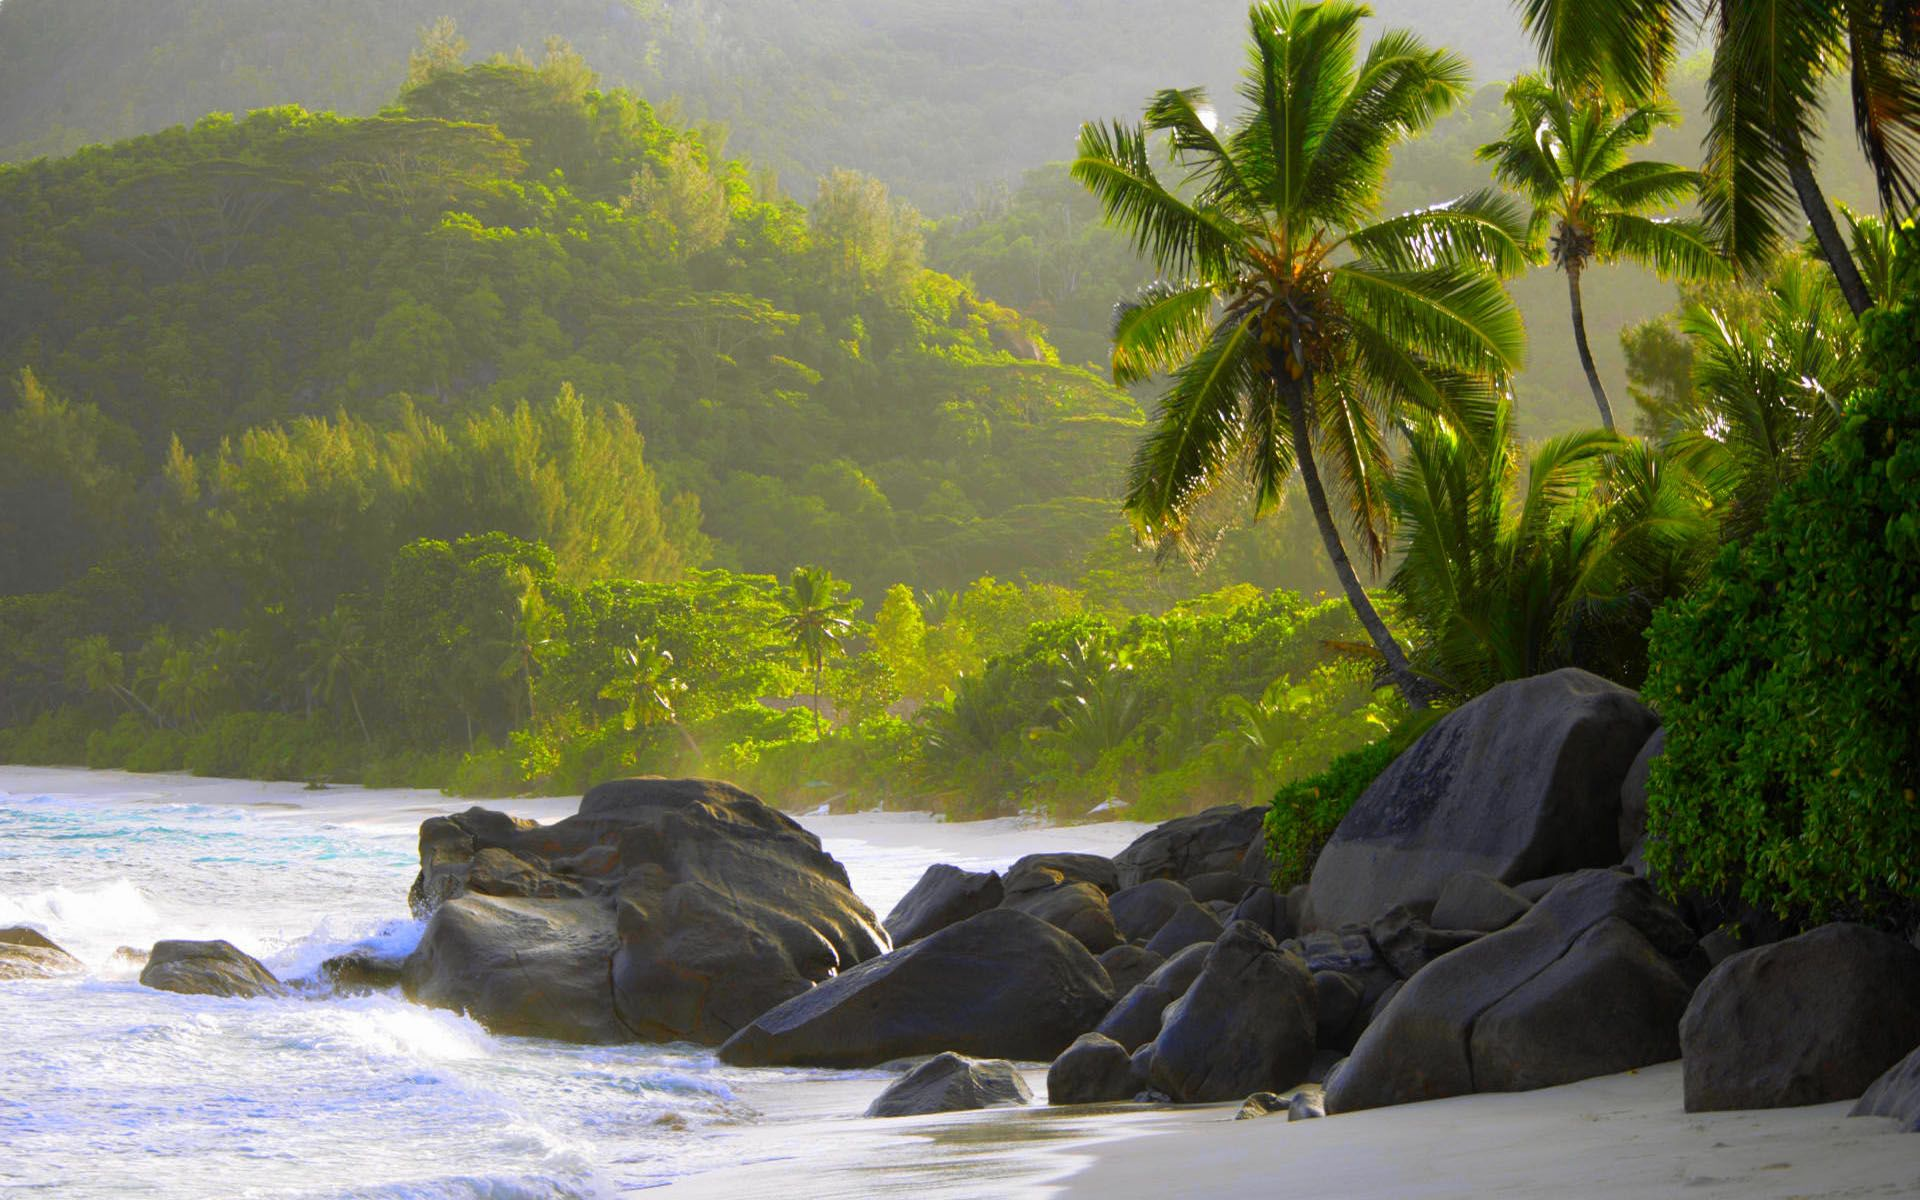 Rocks and palm trees along shore